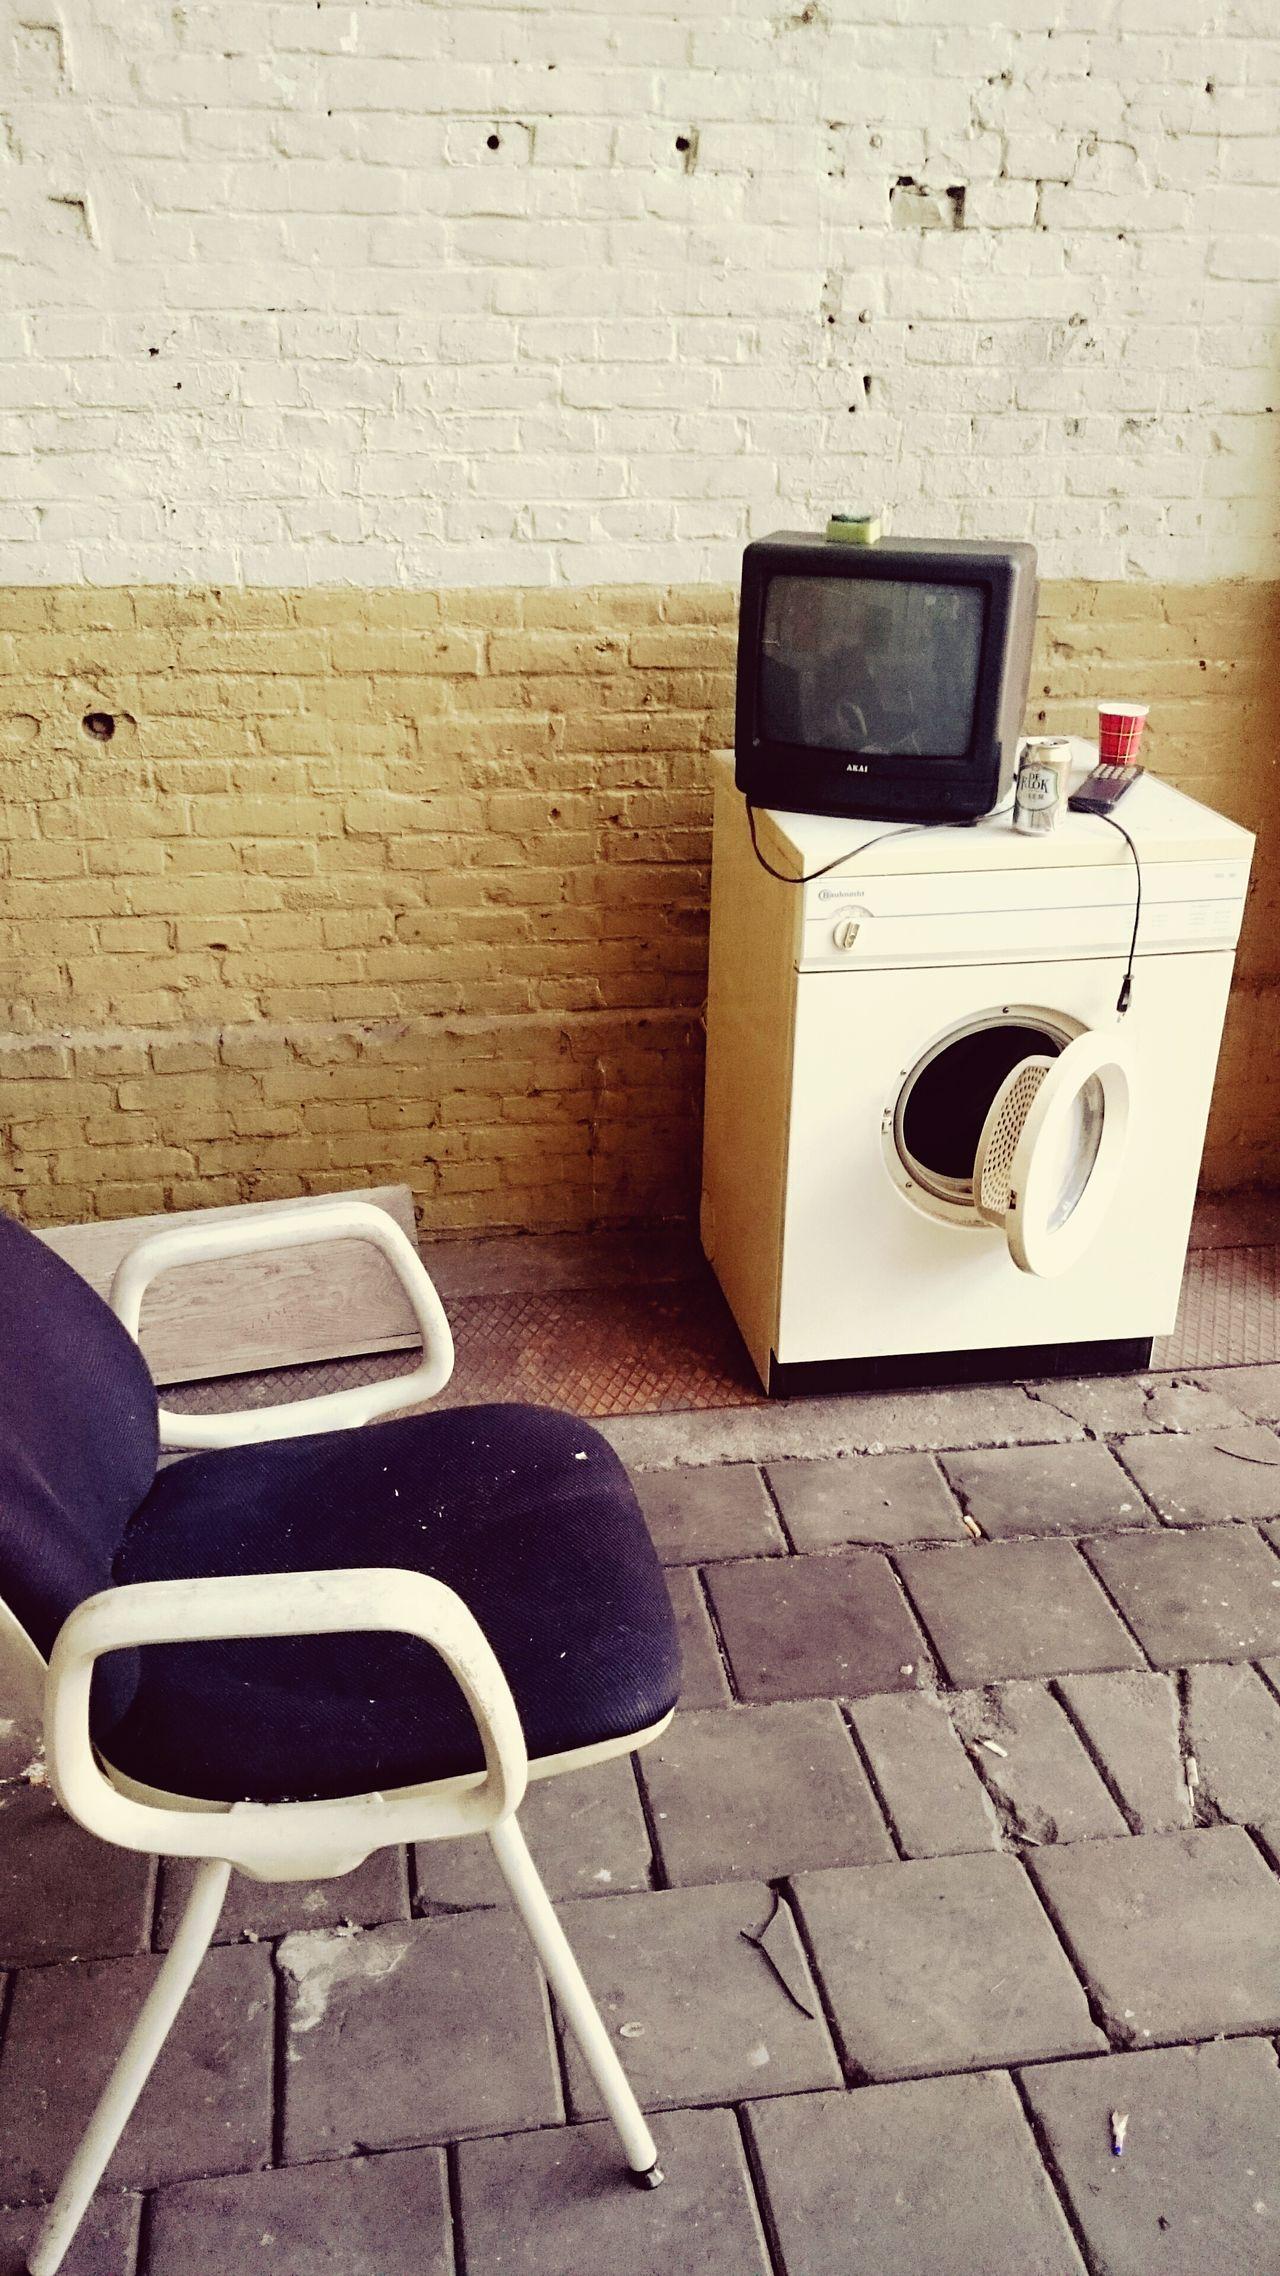 Washmacine Chair T.V. Television Brick Wall Abandoned Places Check This Out Abandoned Buildings Abandoned_junkies Technology Everywhere Technology Taking Photos Apparatus How Do We Build The World? Howimetyourmother Industrial Abandoned Abandonedplaces Abandoned Building Abandonedplace Abandonedbuilding Akai Beer Telling Stories Differently The Color Of Technology